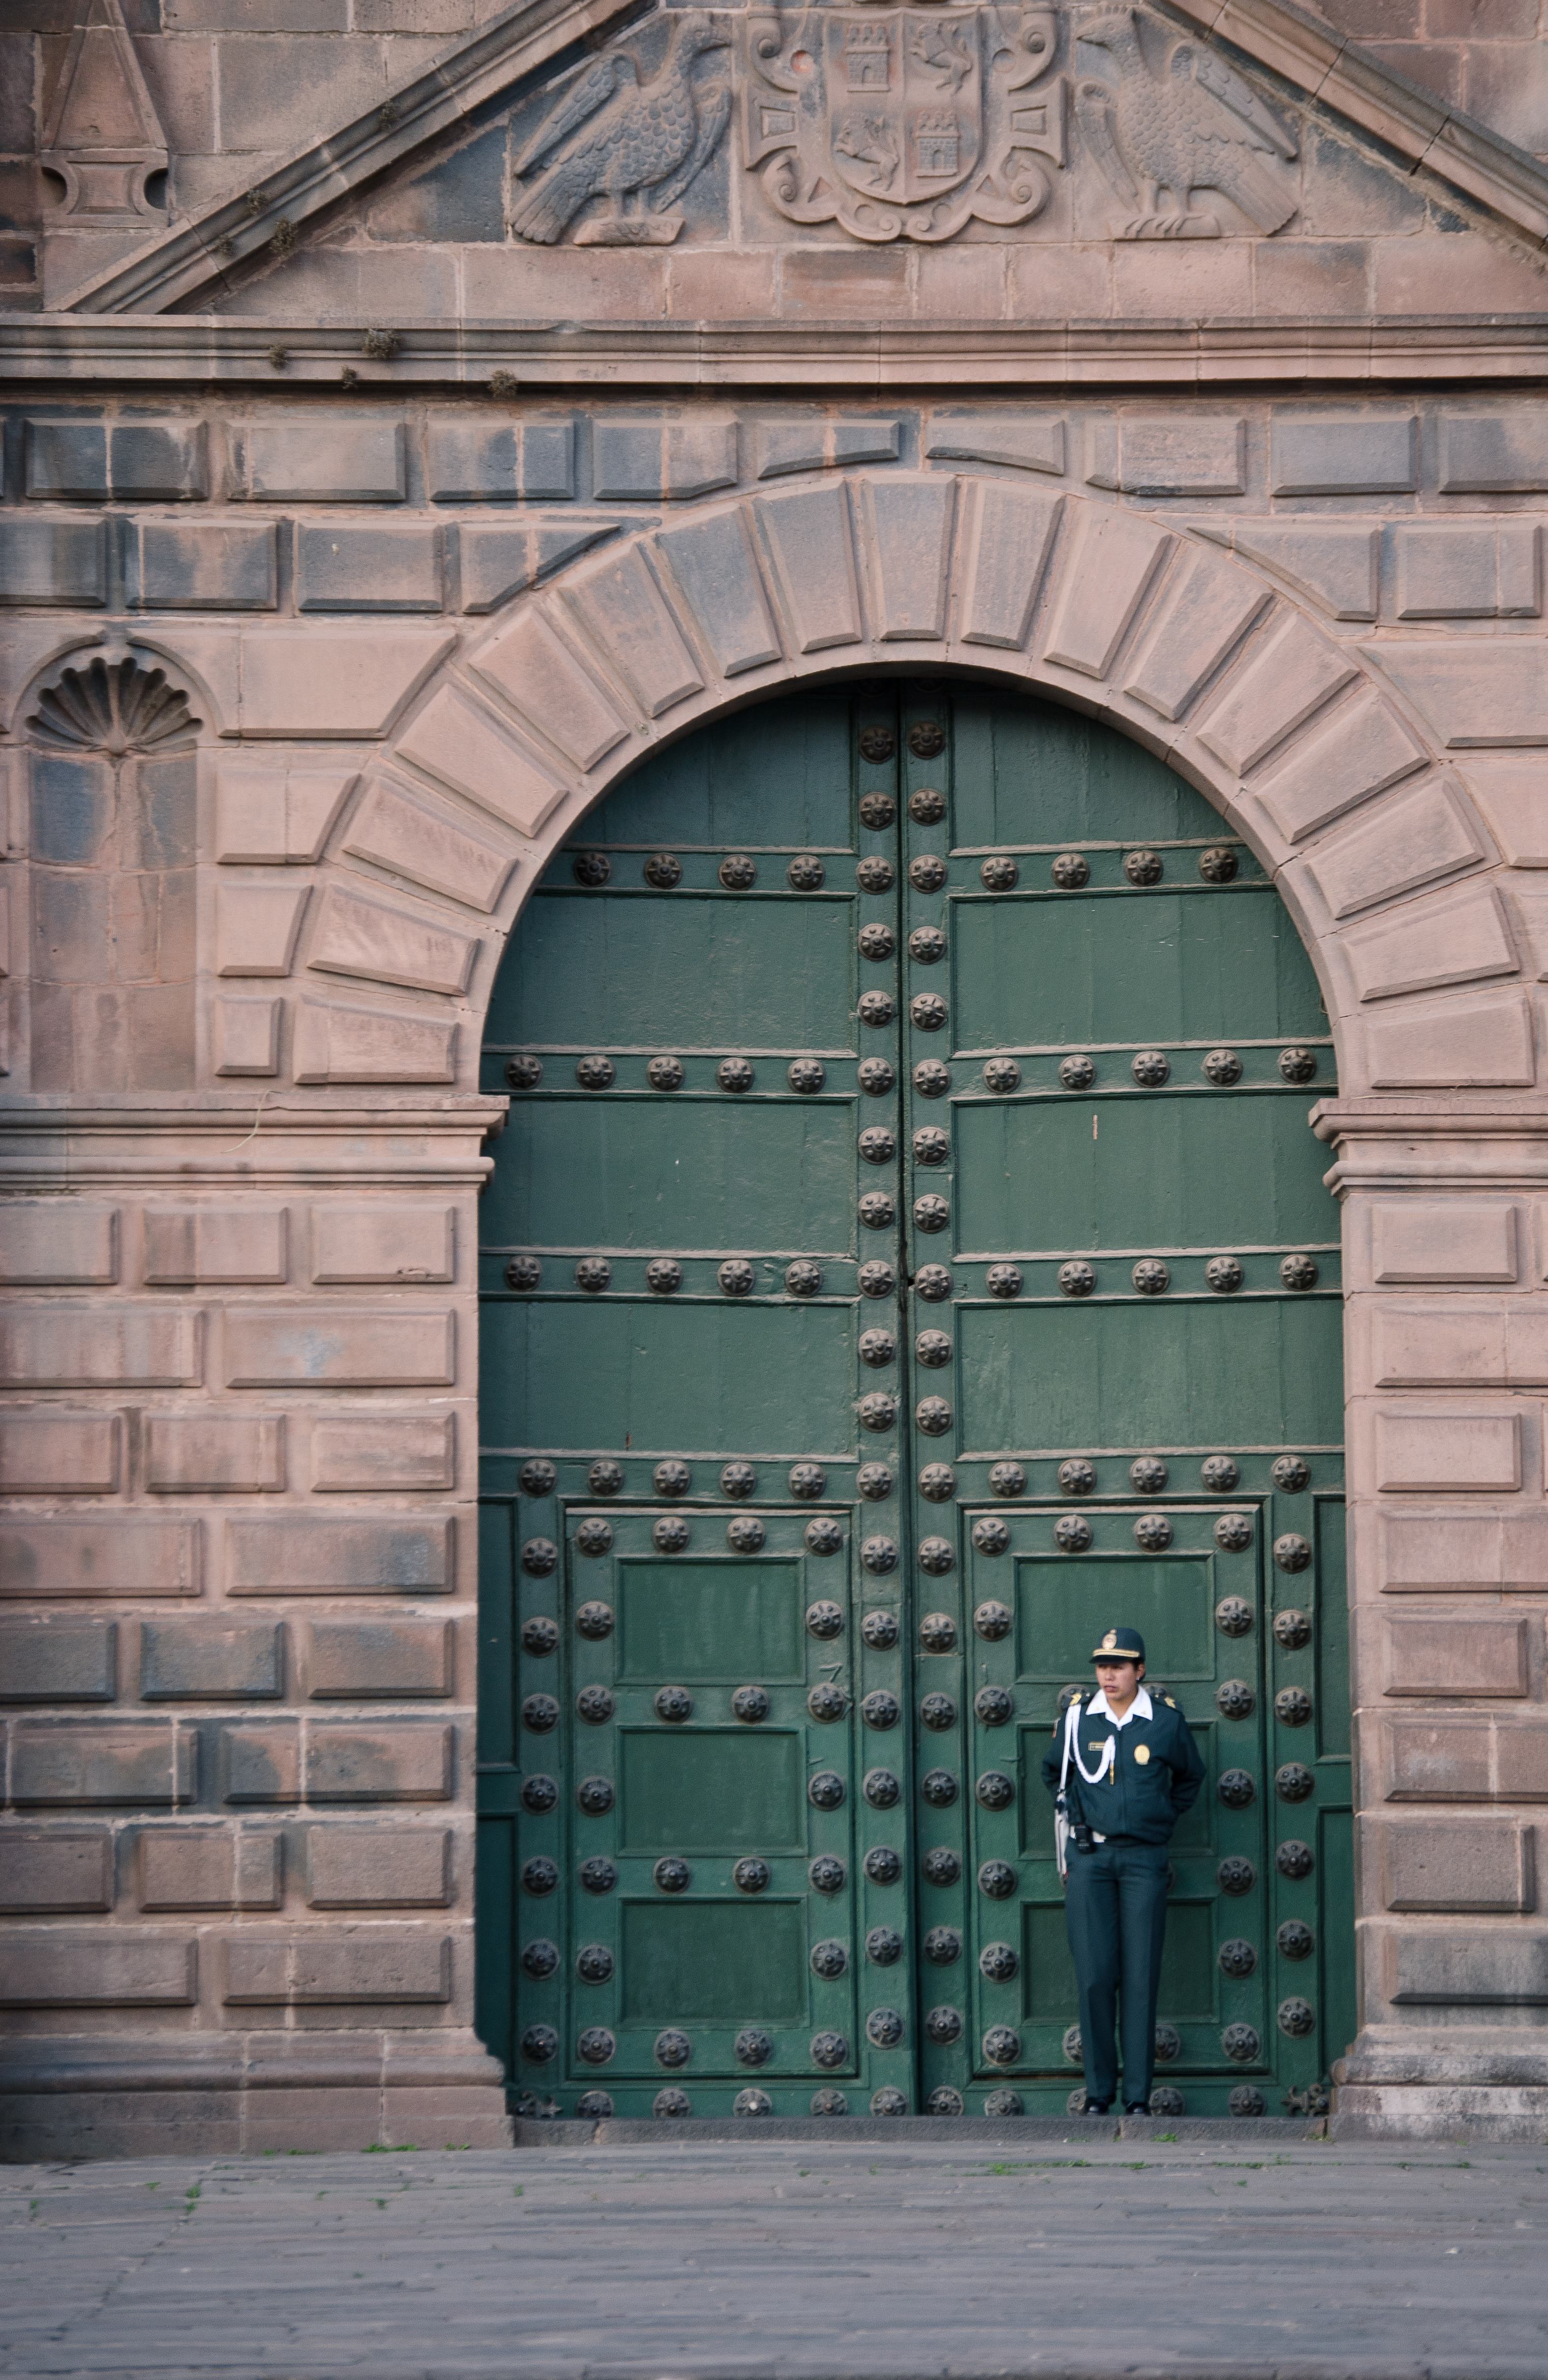 Photo: Policewoman in front of Cusco's Cathedral. Taken by myself.